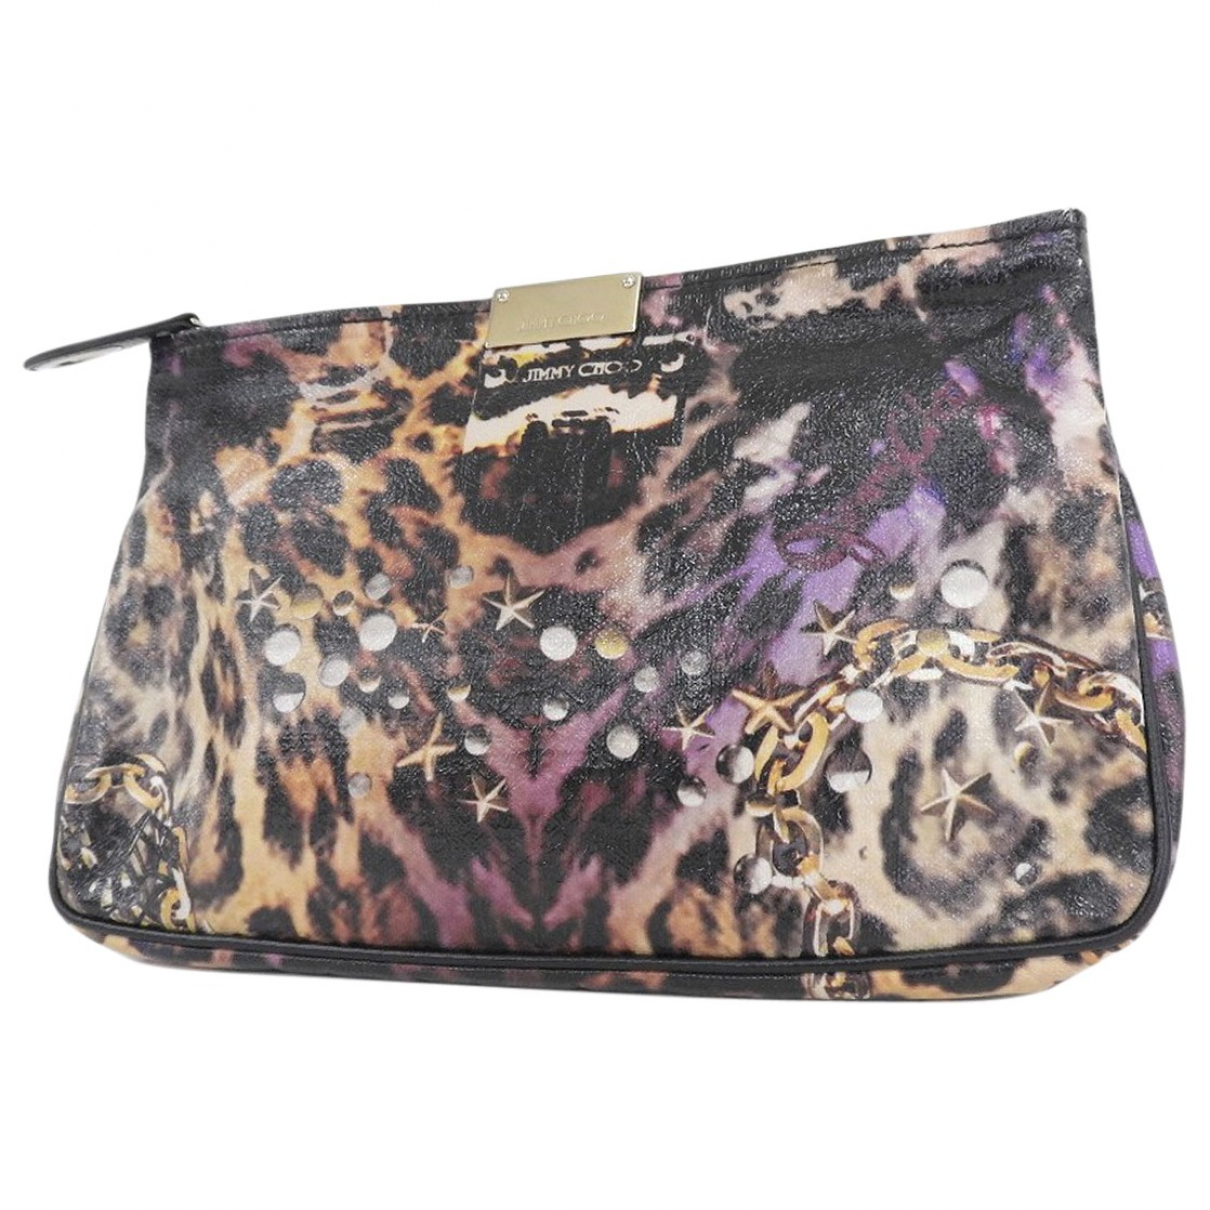 Jimmy Choo \N Multicolour Patent leather Clutch bag for Women \N